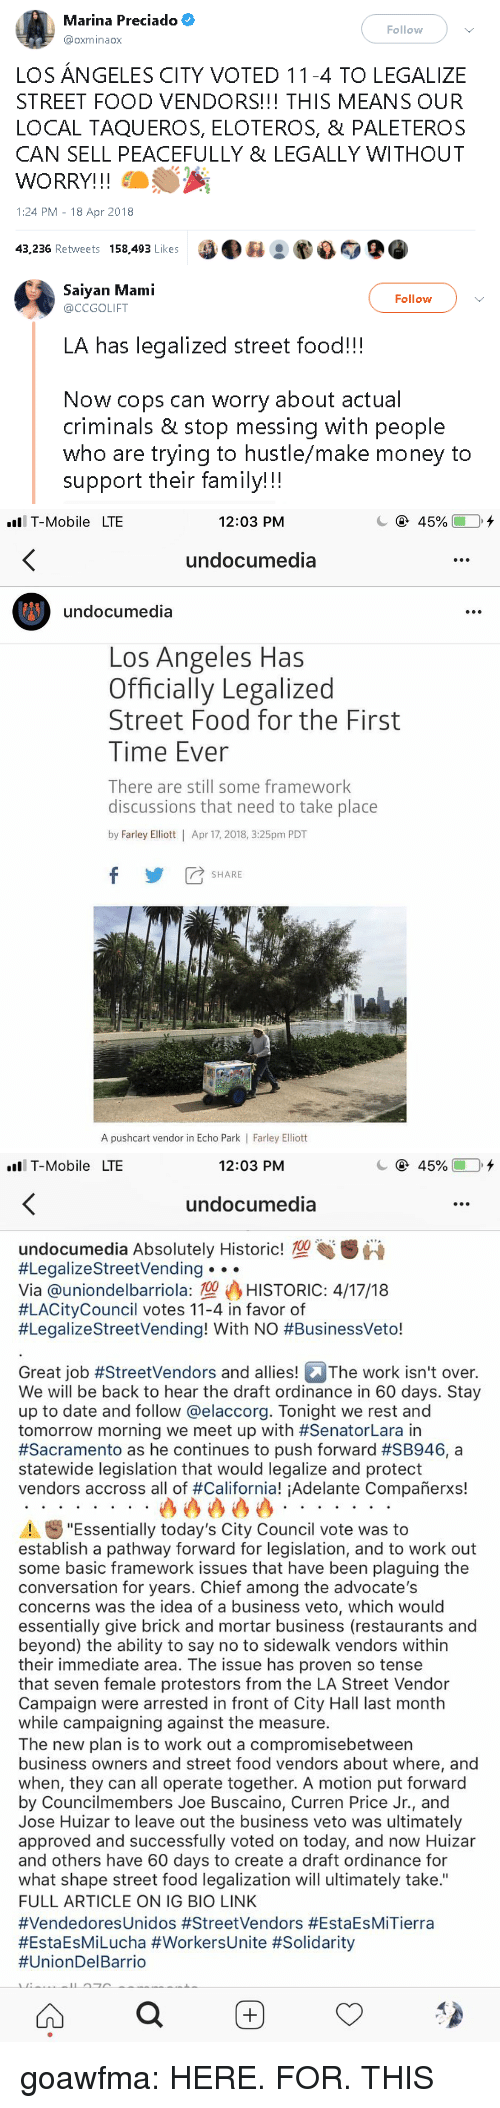 """Put Forward: Marina Preciado  @oxminaox  Follow  LOS ANGELES CITY VOTED 11-4 TO LEGALIZE  STREET FOOD VENDORS!!! THIS MEANS OUR  LOCAL TAQUEROS, ELOTEROS, & PALETEROS  CAN SELL PEACEFULLY 8 LEGALLY WITHOUT  WORRY!!!  1:24 PM-18 Apr 2018  43,236 Retweets 158,493 Likes089o   Saiyan Mami  @CCGOLIFT  Follow  LA has legalized street food!!!  Now cops can worry about actual  criminals & stop messing with people  who are trying to hustle/make money to  support their family!!!   ll T-Mobile LTE  12:03 PM  undocumedia  undocumedia  Los Angeles Has  Officially Legalized  Street Food for the First  Time Ever  There are still some framework  discussions that need to take place  by Farley Elliott 